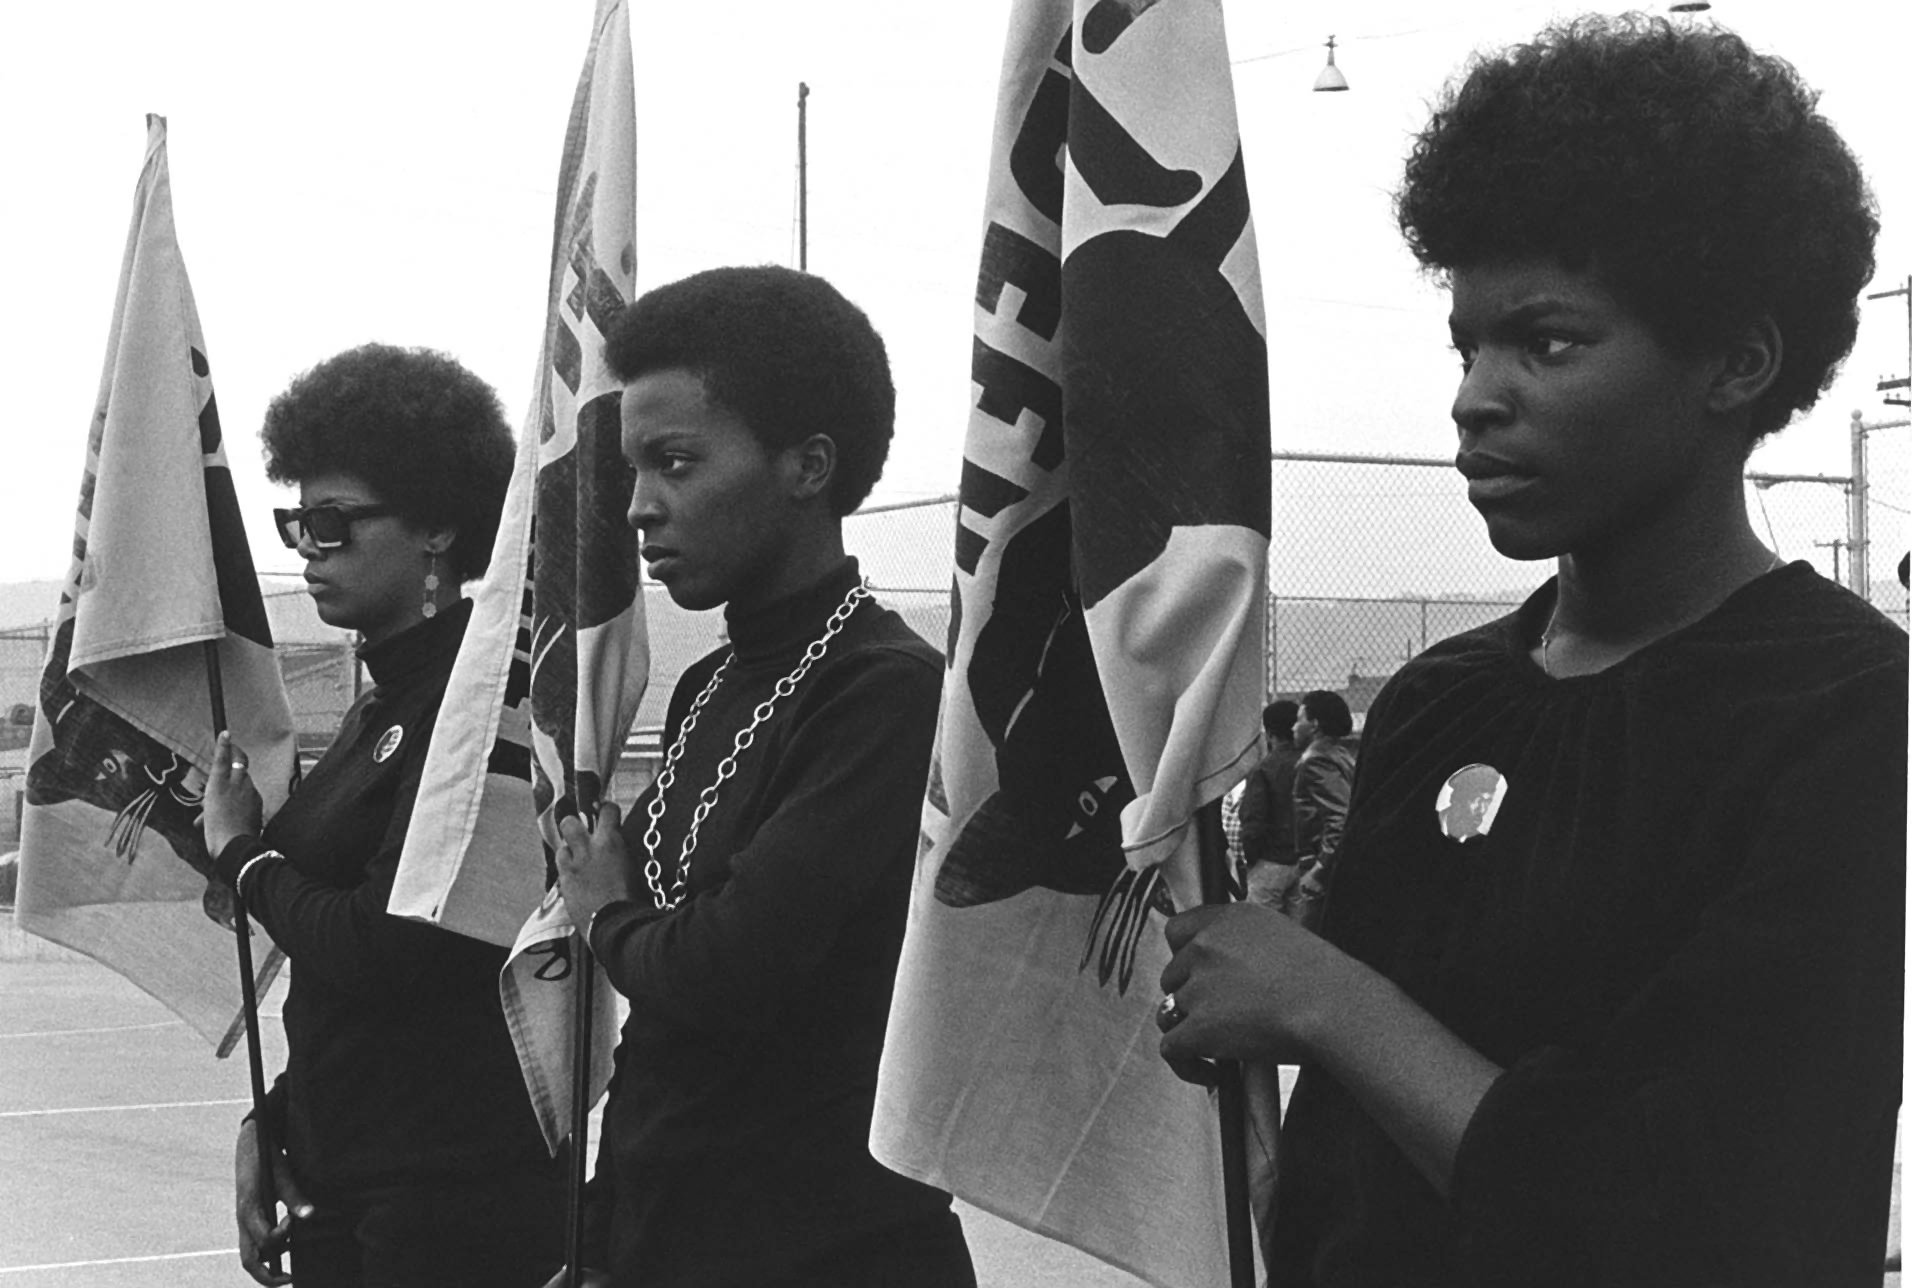 <h3>The Black Panthers</h3>